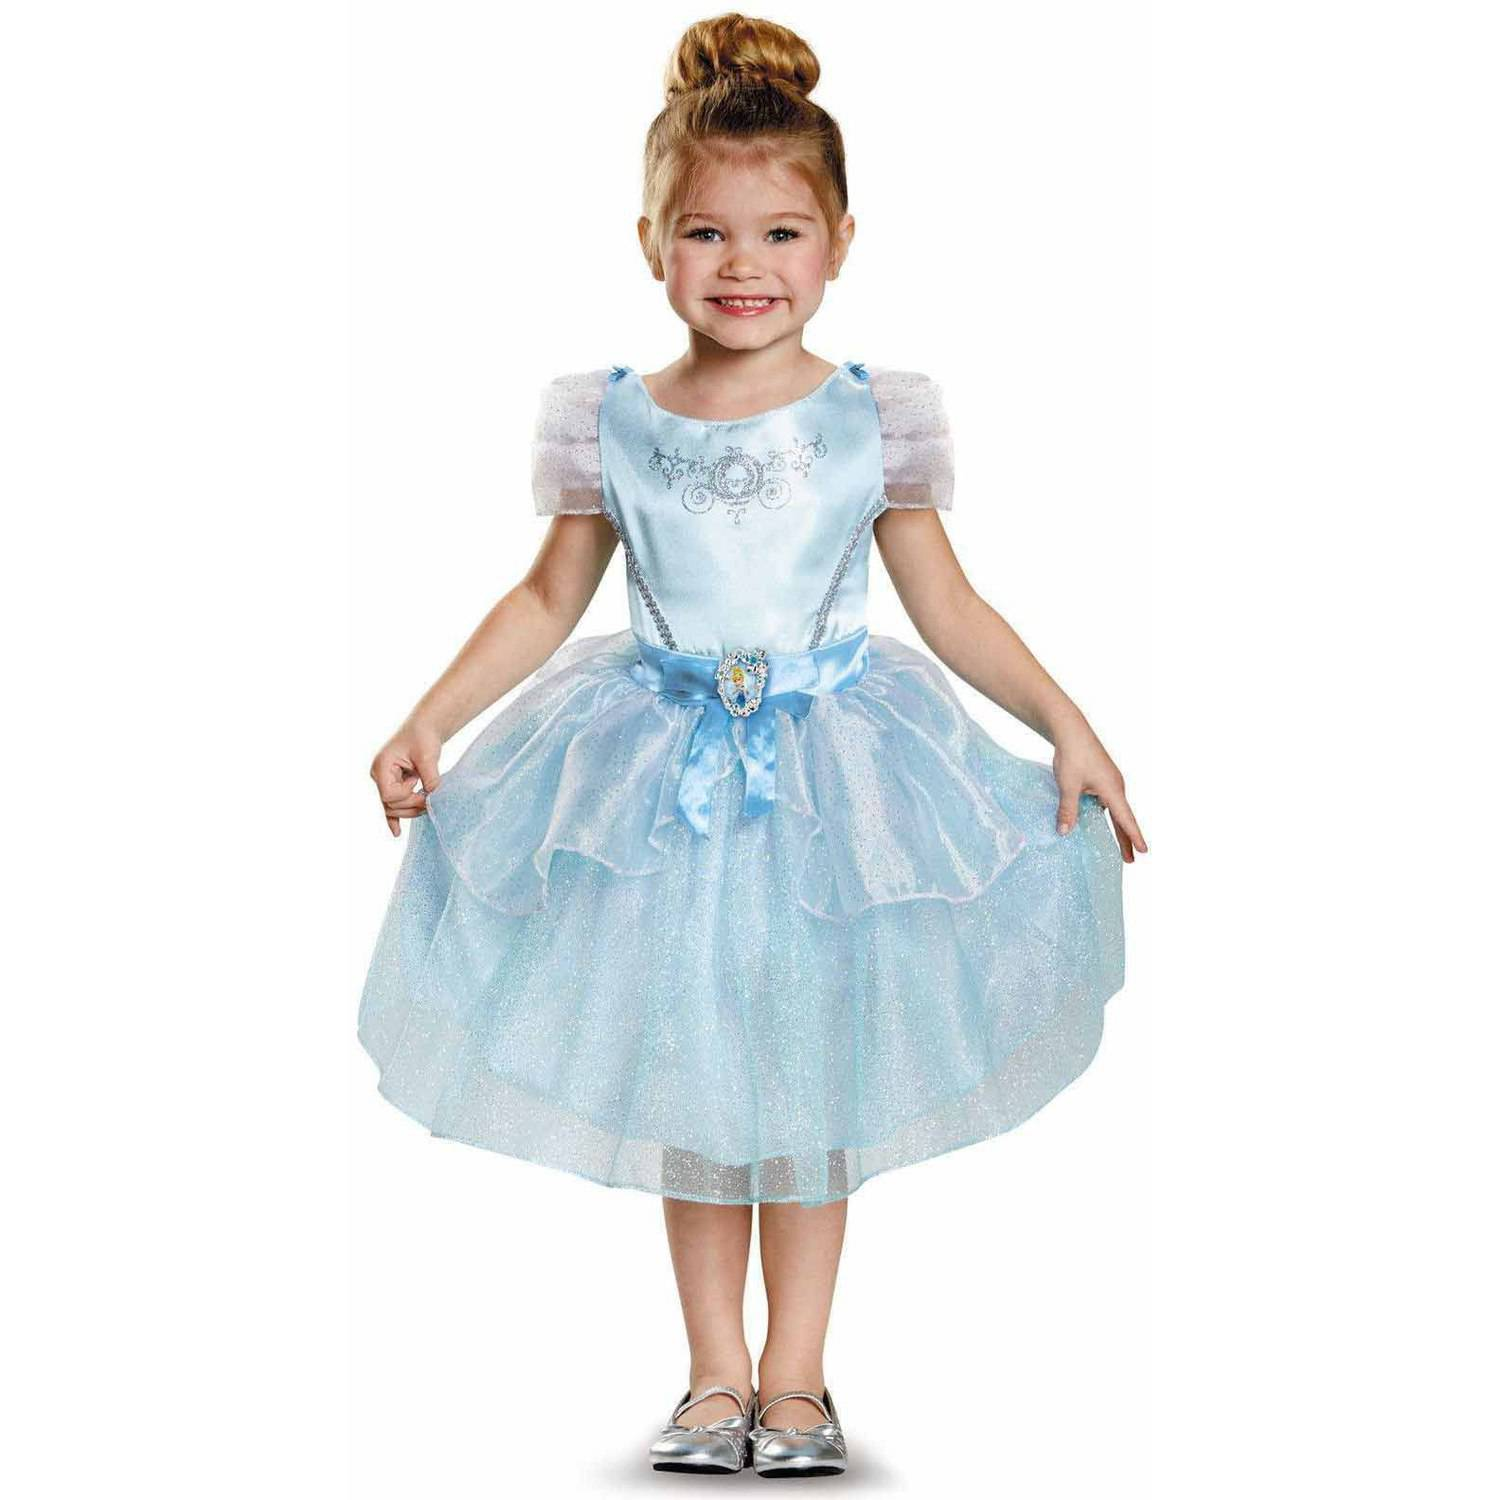 Cinderella Classic Child Halloween Costume